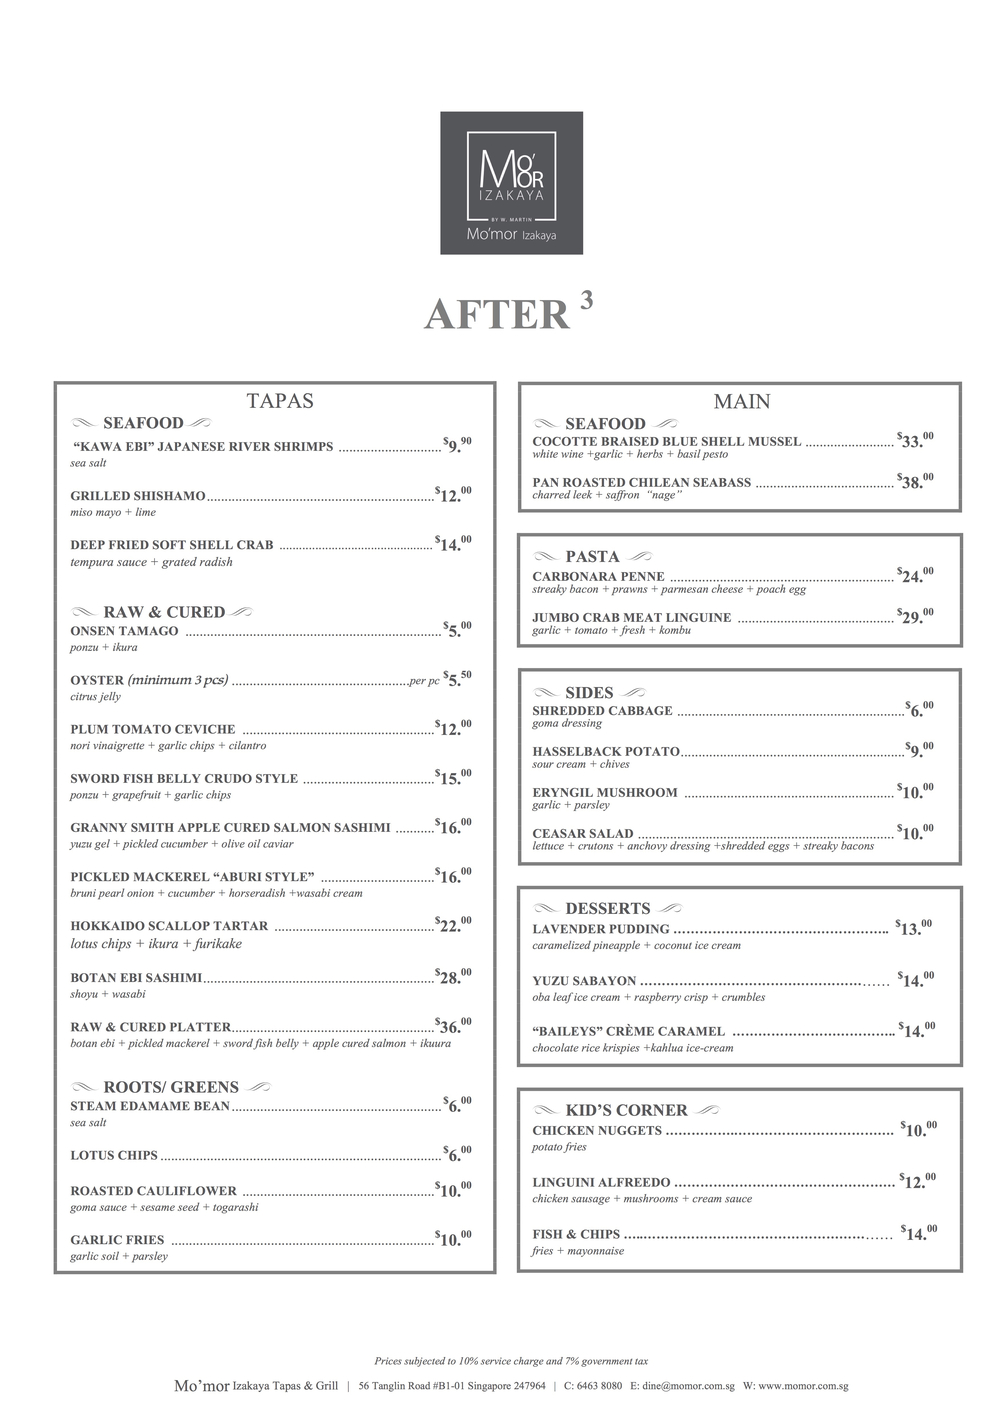 Mo'mor After 3 Menu (Updated 24th July'17). Available on weekdays (Sat - Sun) only from 3pm - 6pm